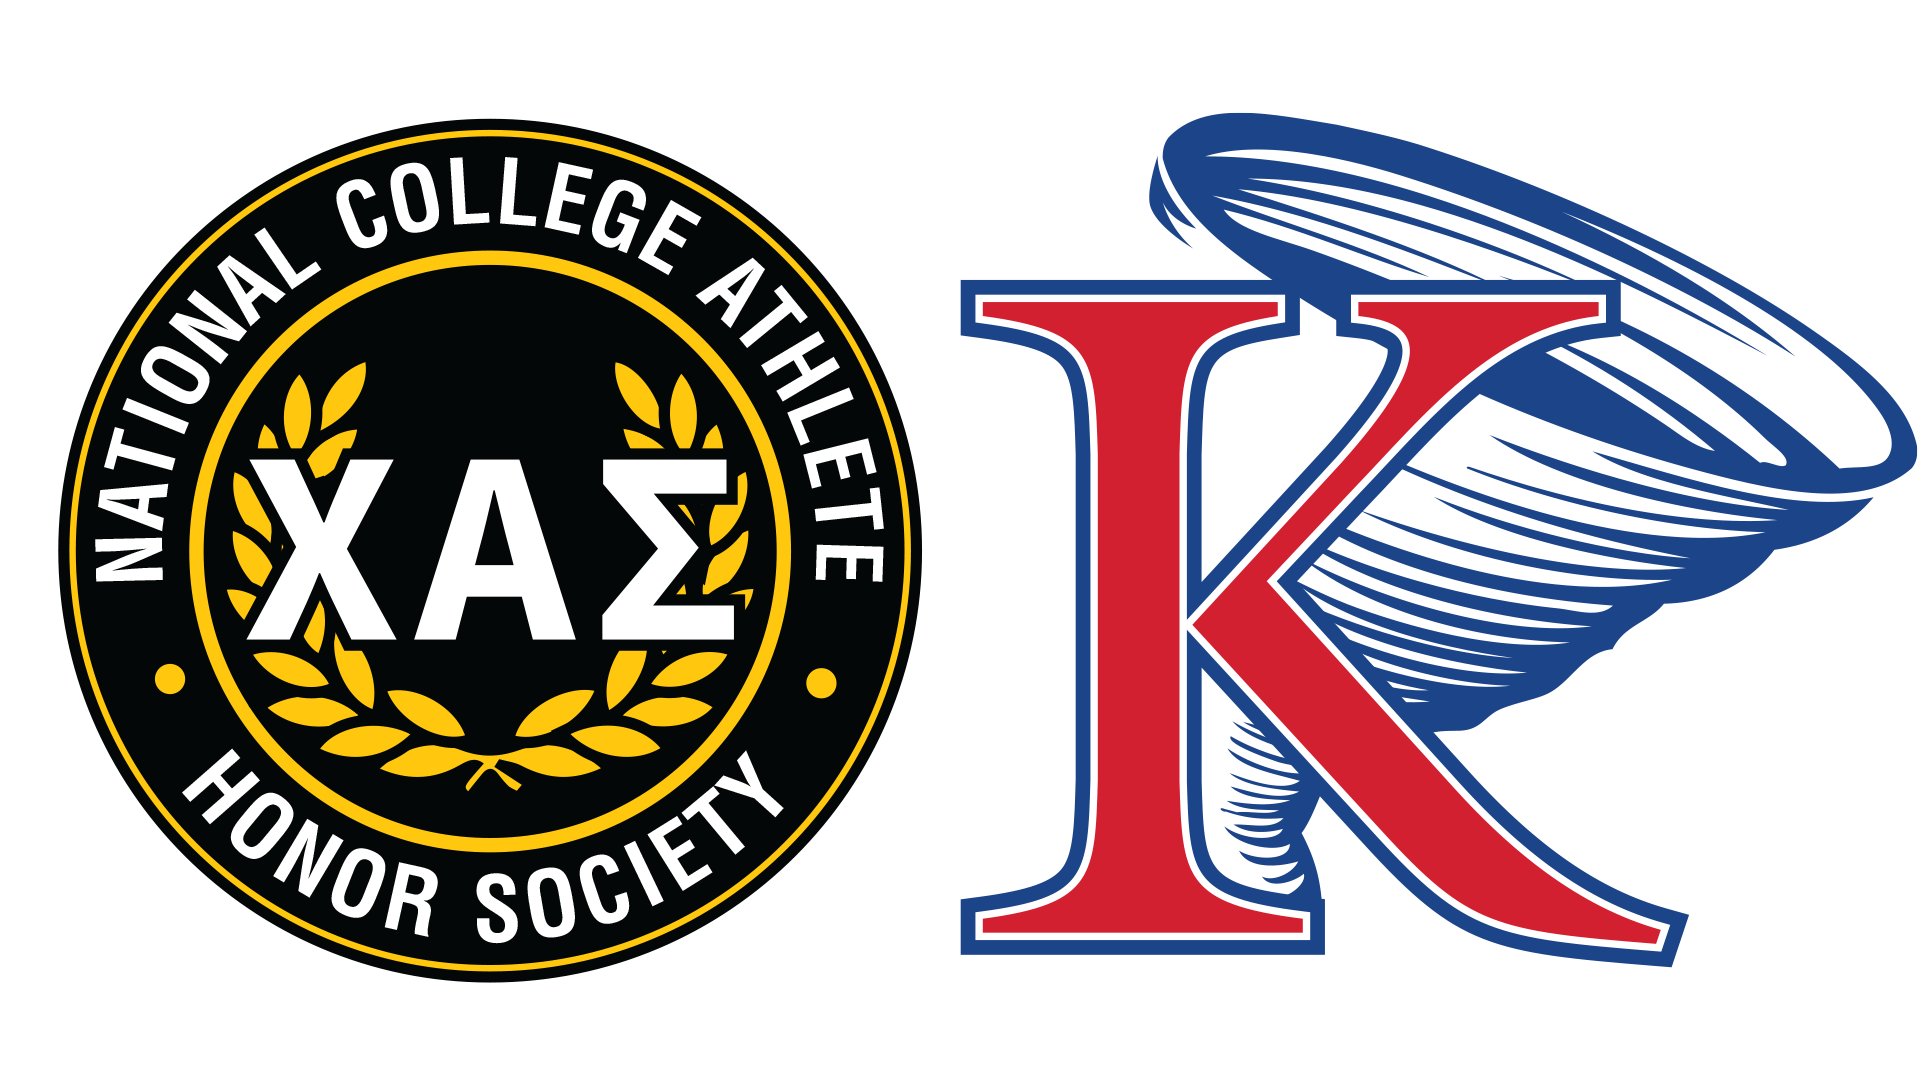 King inducts 45 student-athletes into Chi Alpha Sigma Honor Society